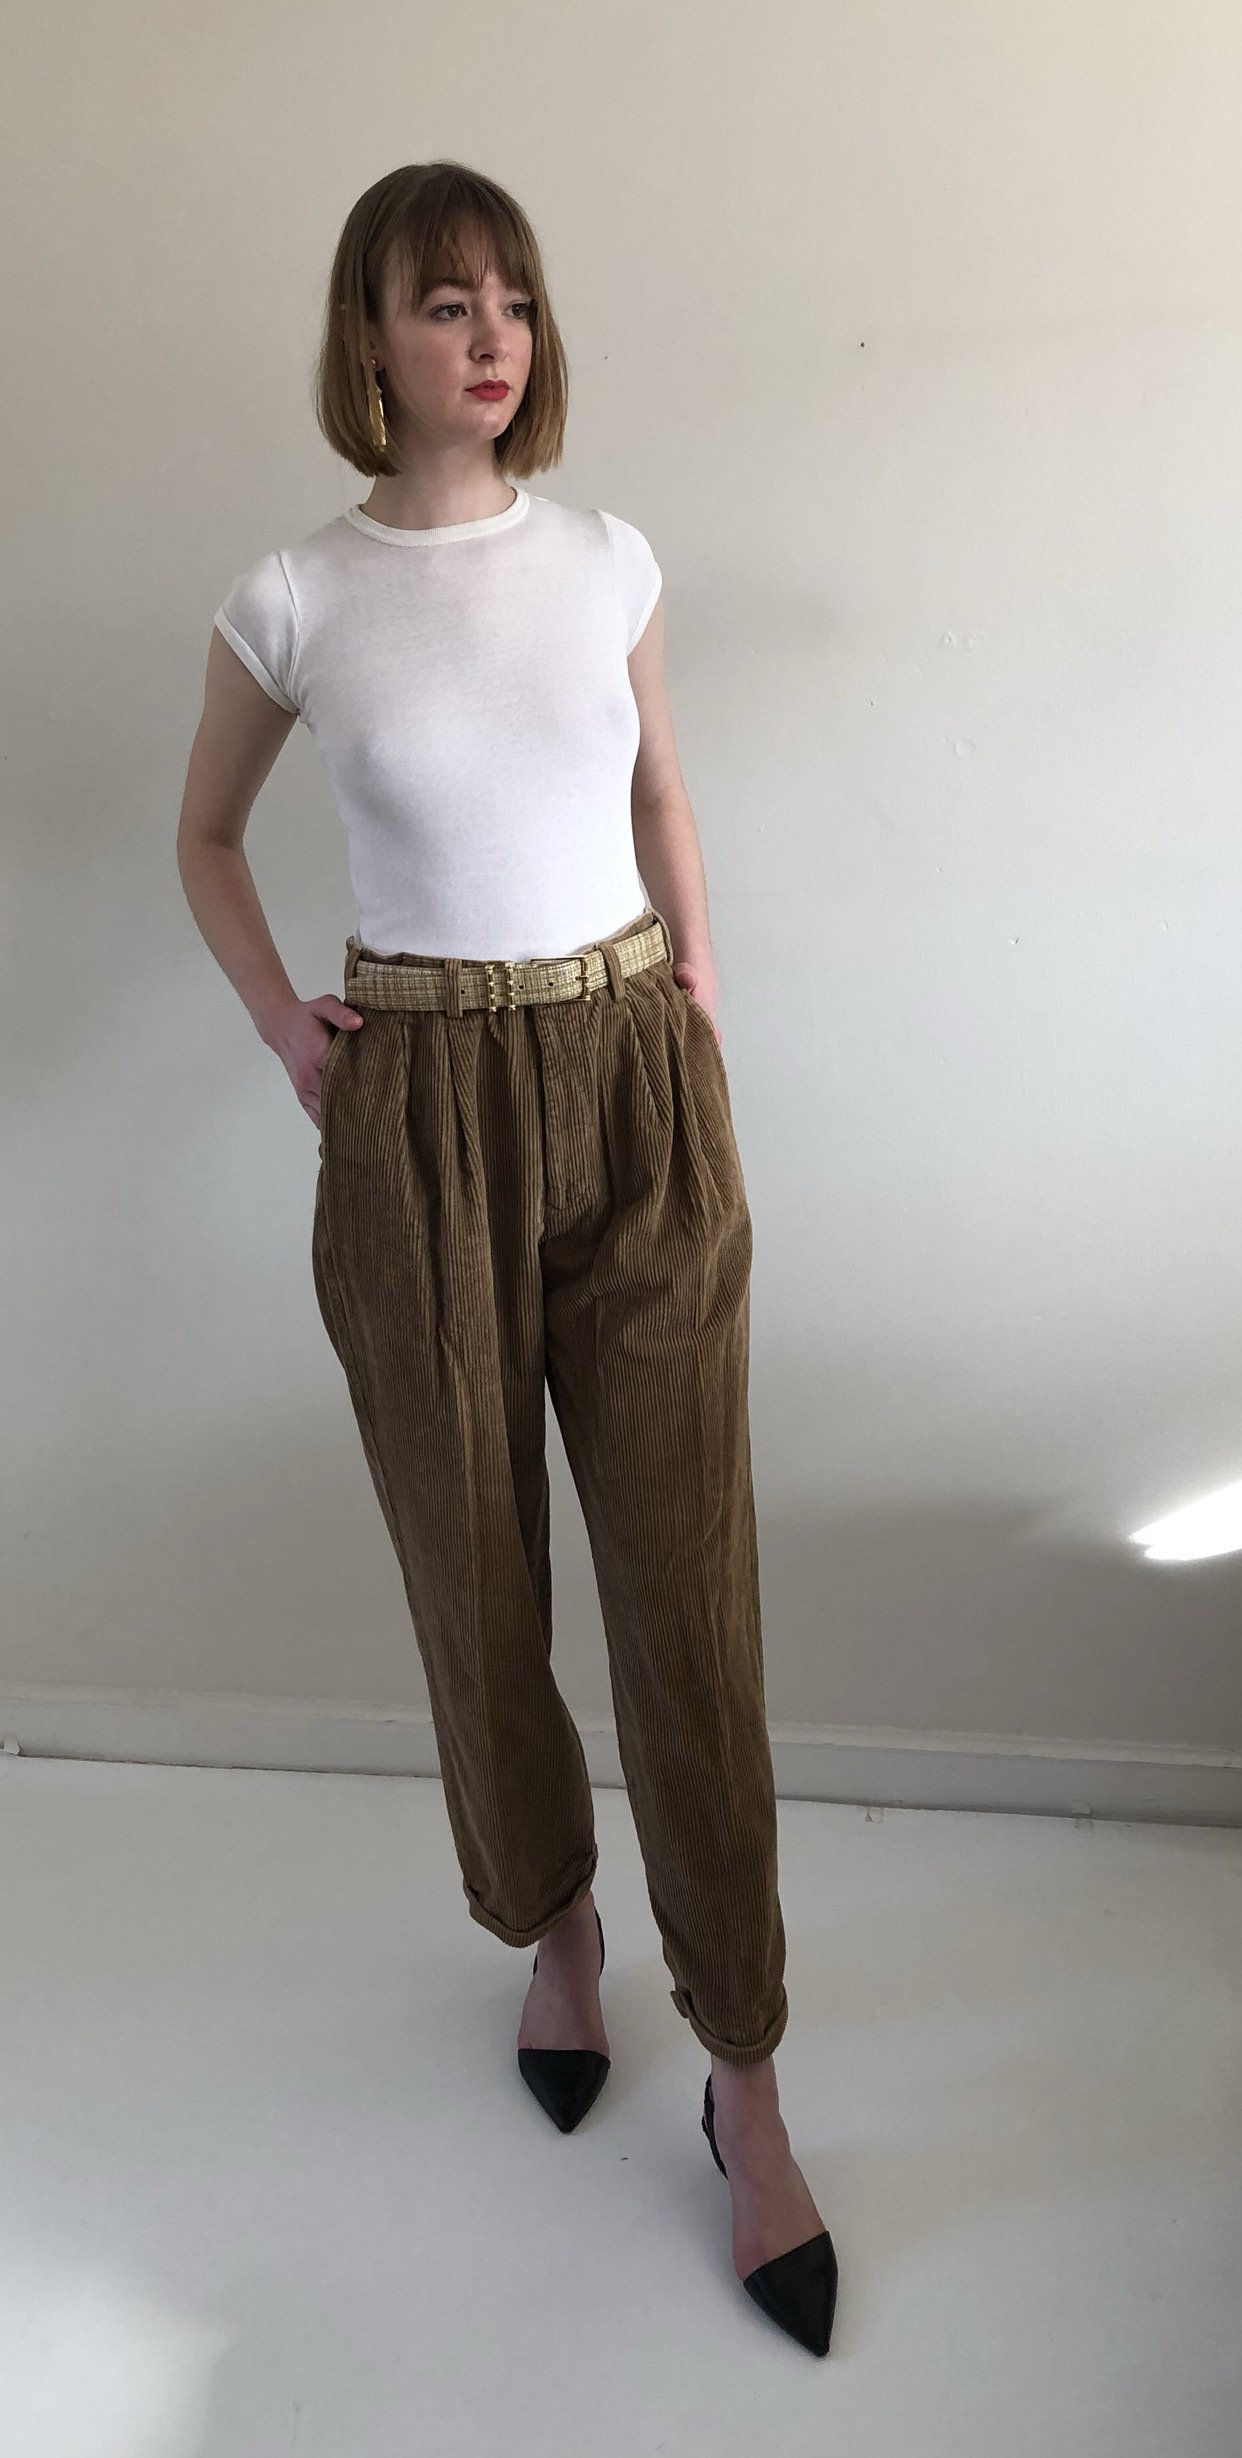 80s corduroy high waisted pants / vintage tobacco pleated baggy corduroy pants / Oleg Cassini caramel cotton wide wale cord pants | 32 W